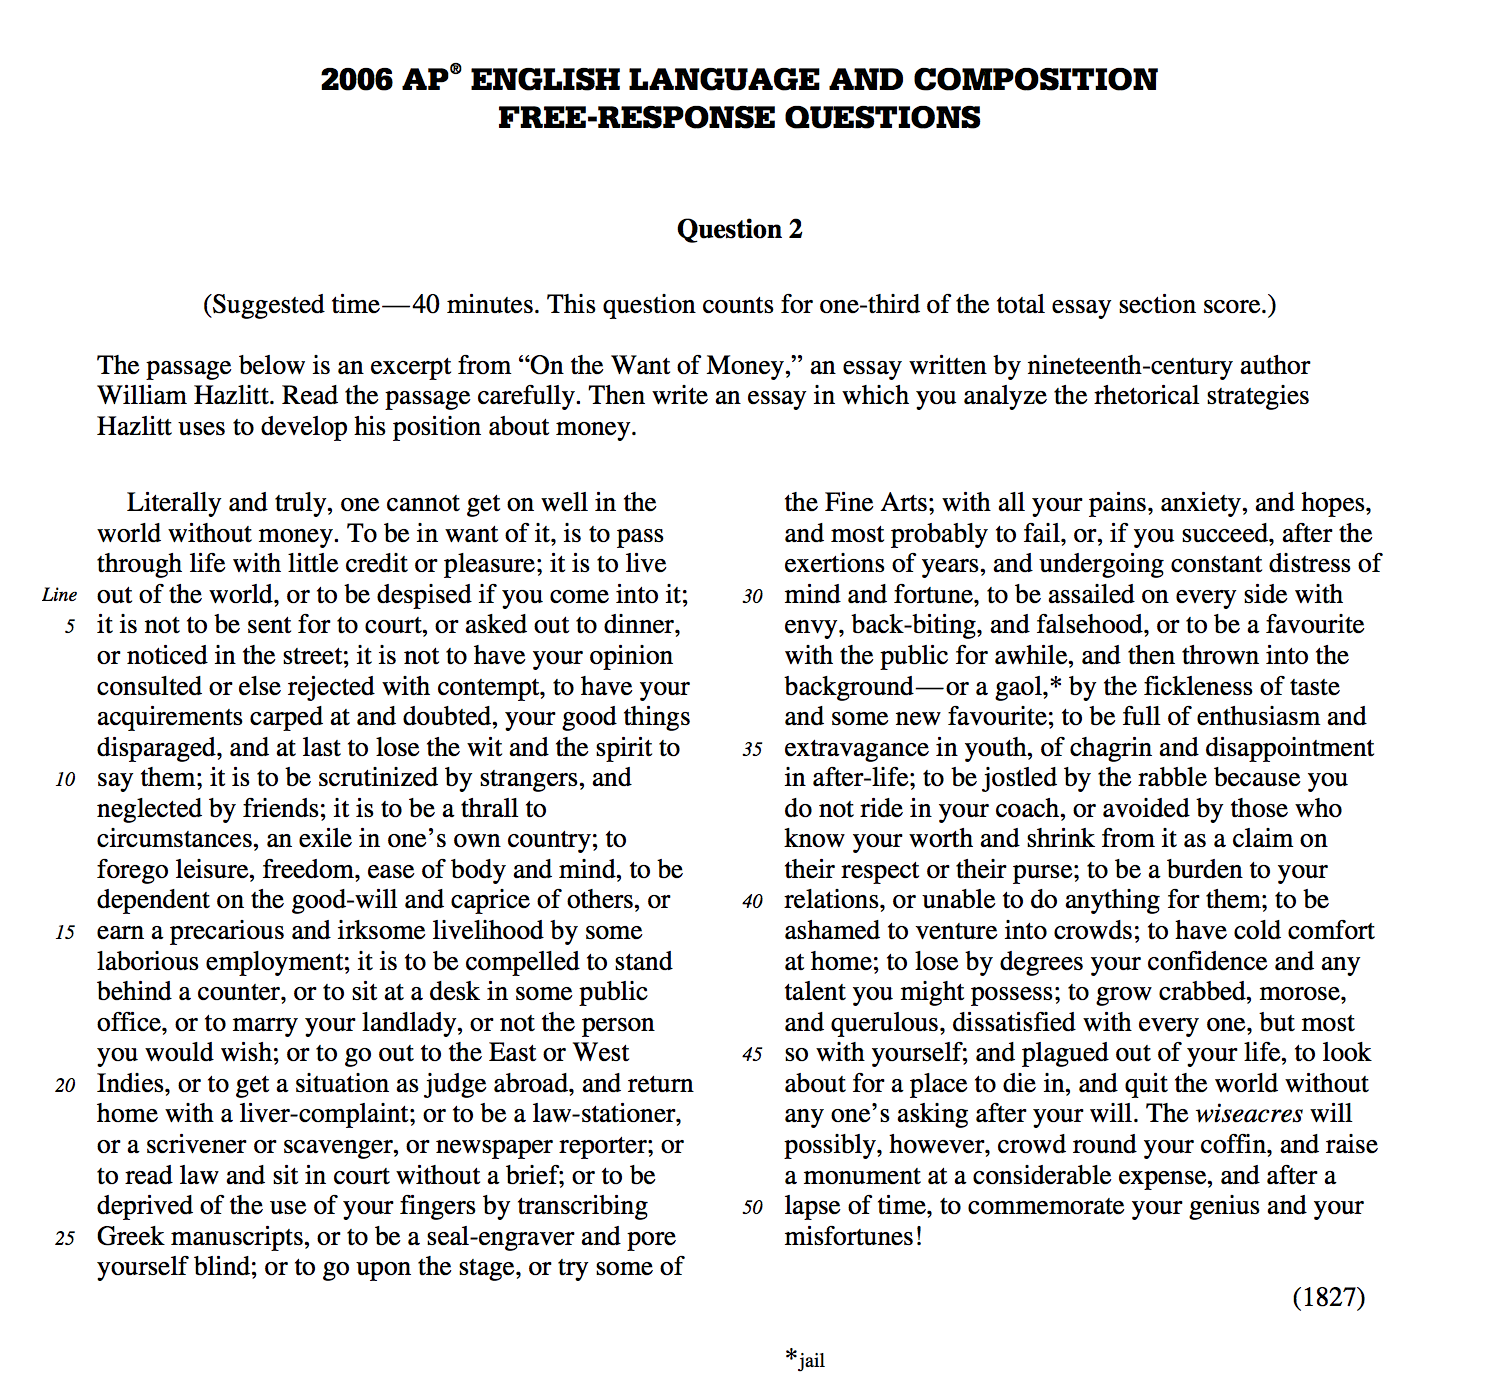 ap english composition essay prompts Explore timing and format for the ap english language and composition exam, and review sample questions, scoring guidelines, and sample student responses.